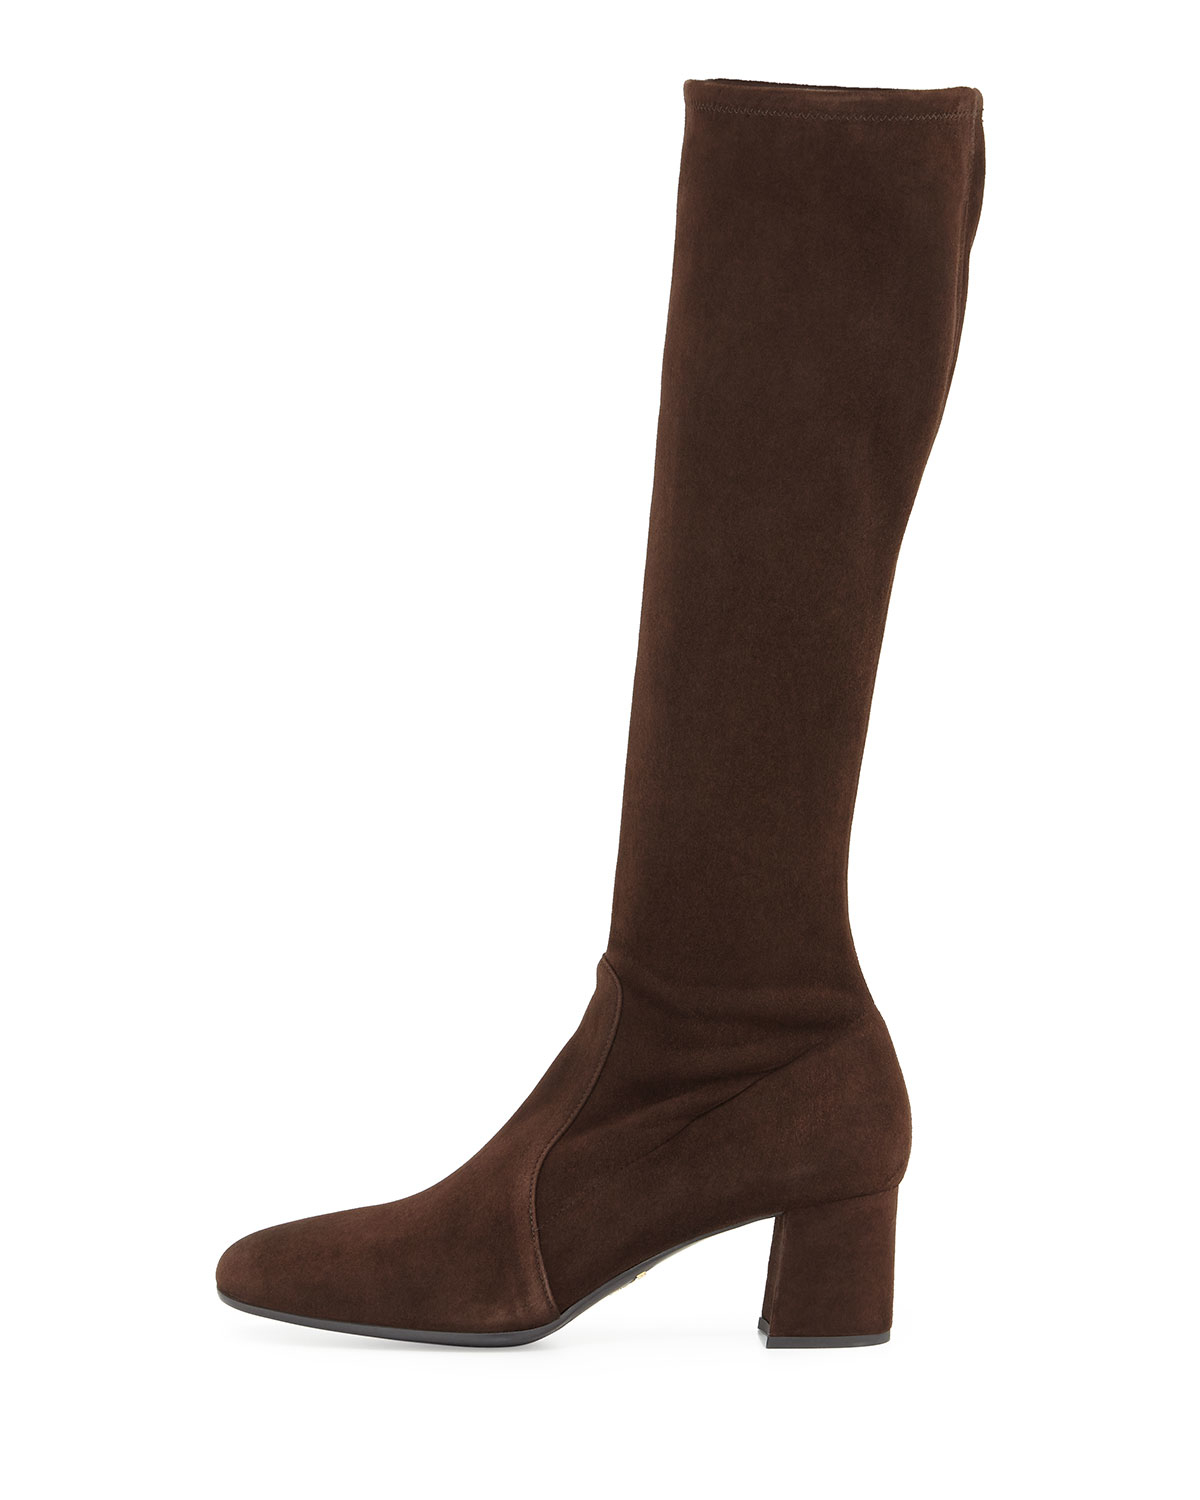 prada low heel stretch suede knee boot in brown save 29